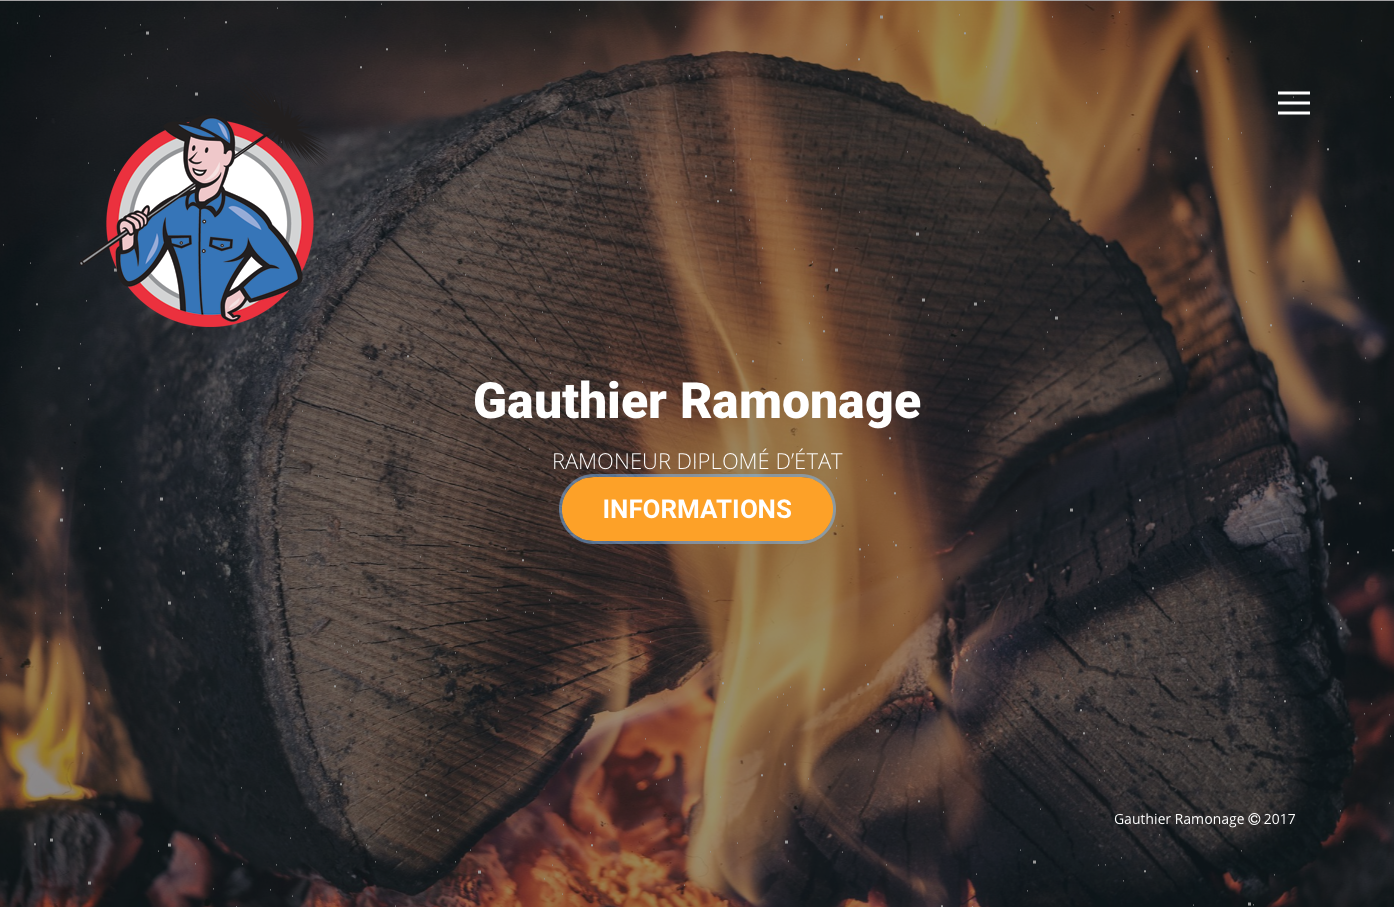 Gauthier Ramonage Manosque /><div class='extra_thumbnails'></div>                    </div>                       <div class=